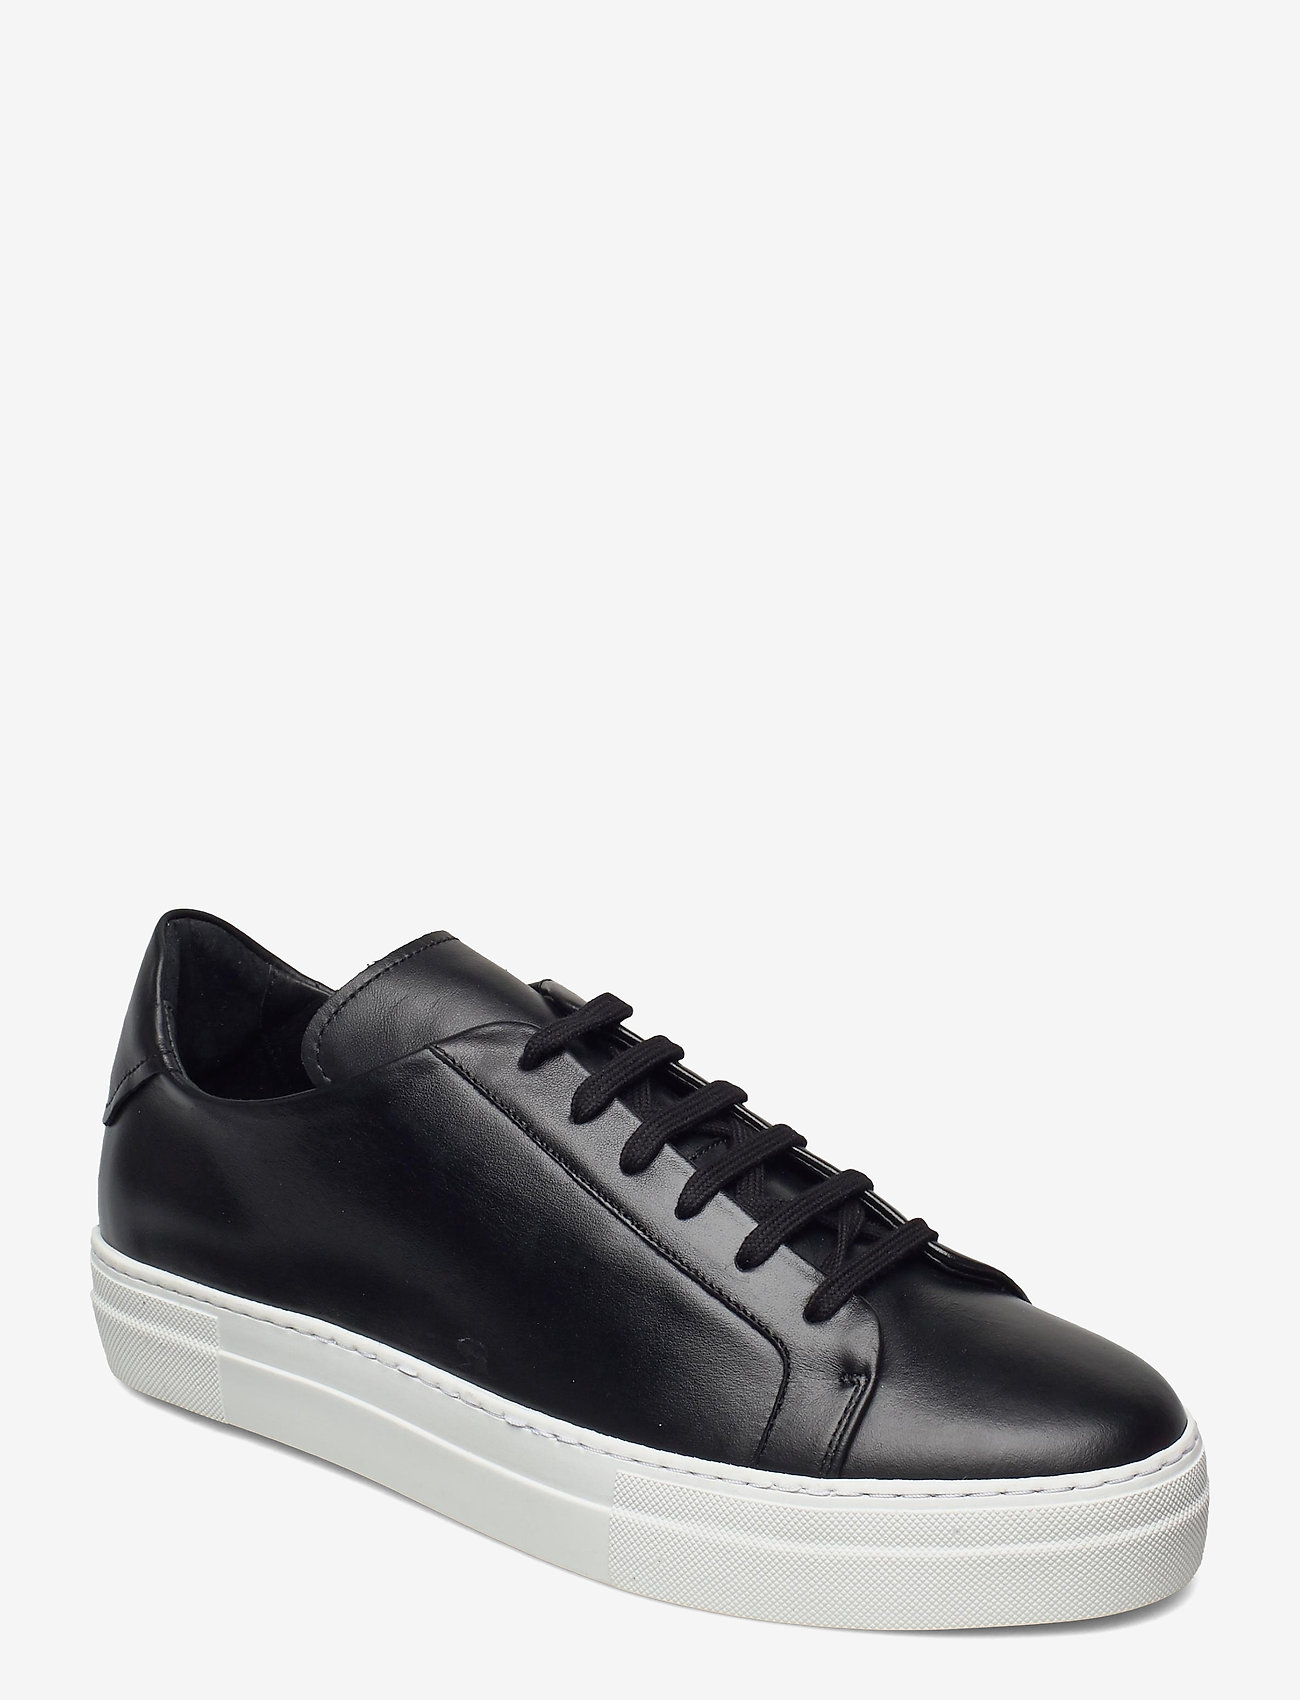 J. Lindeberg - Signature Leather Sneaker - niedriger schnitt - black - 0